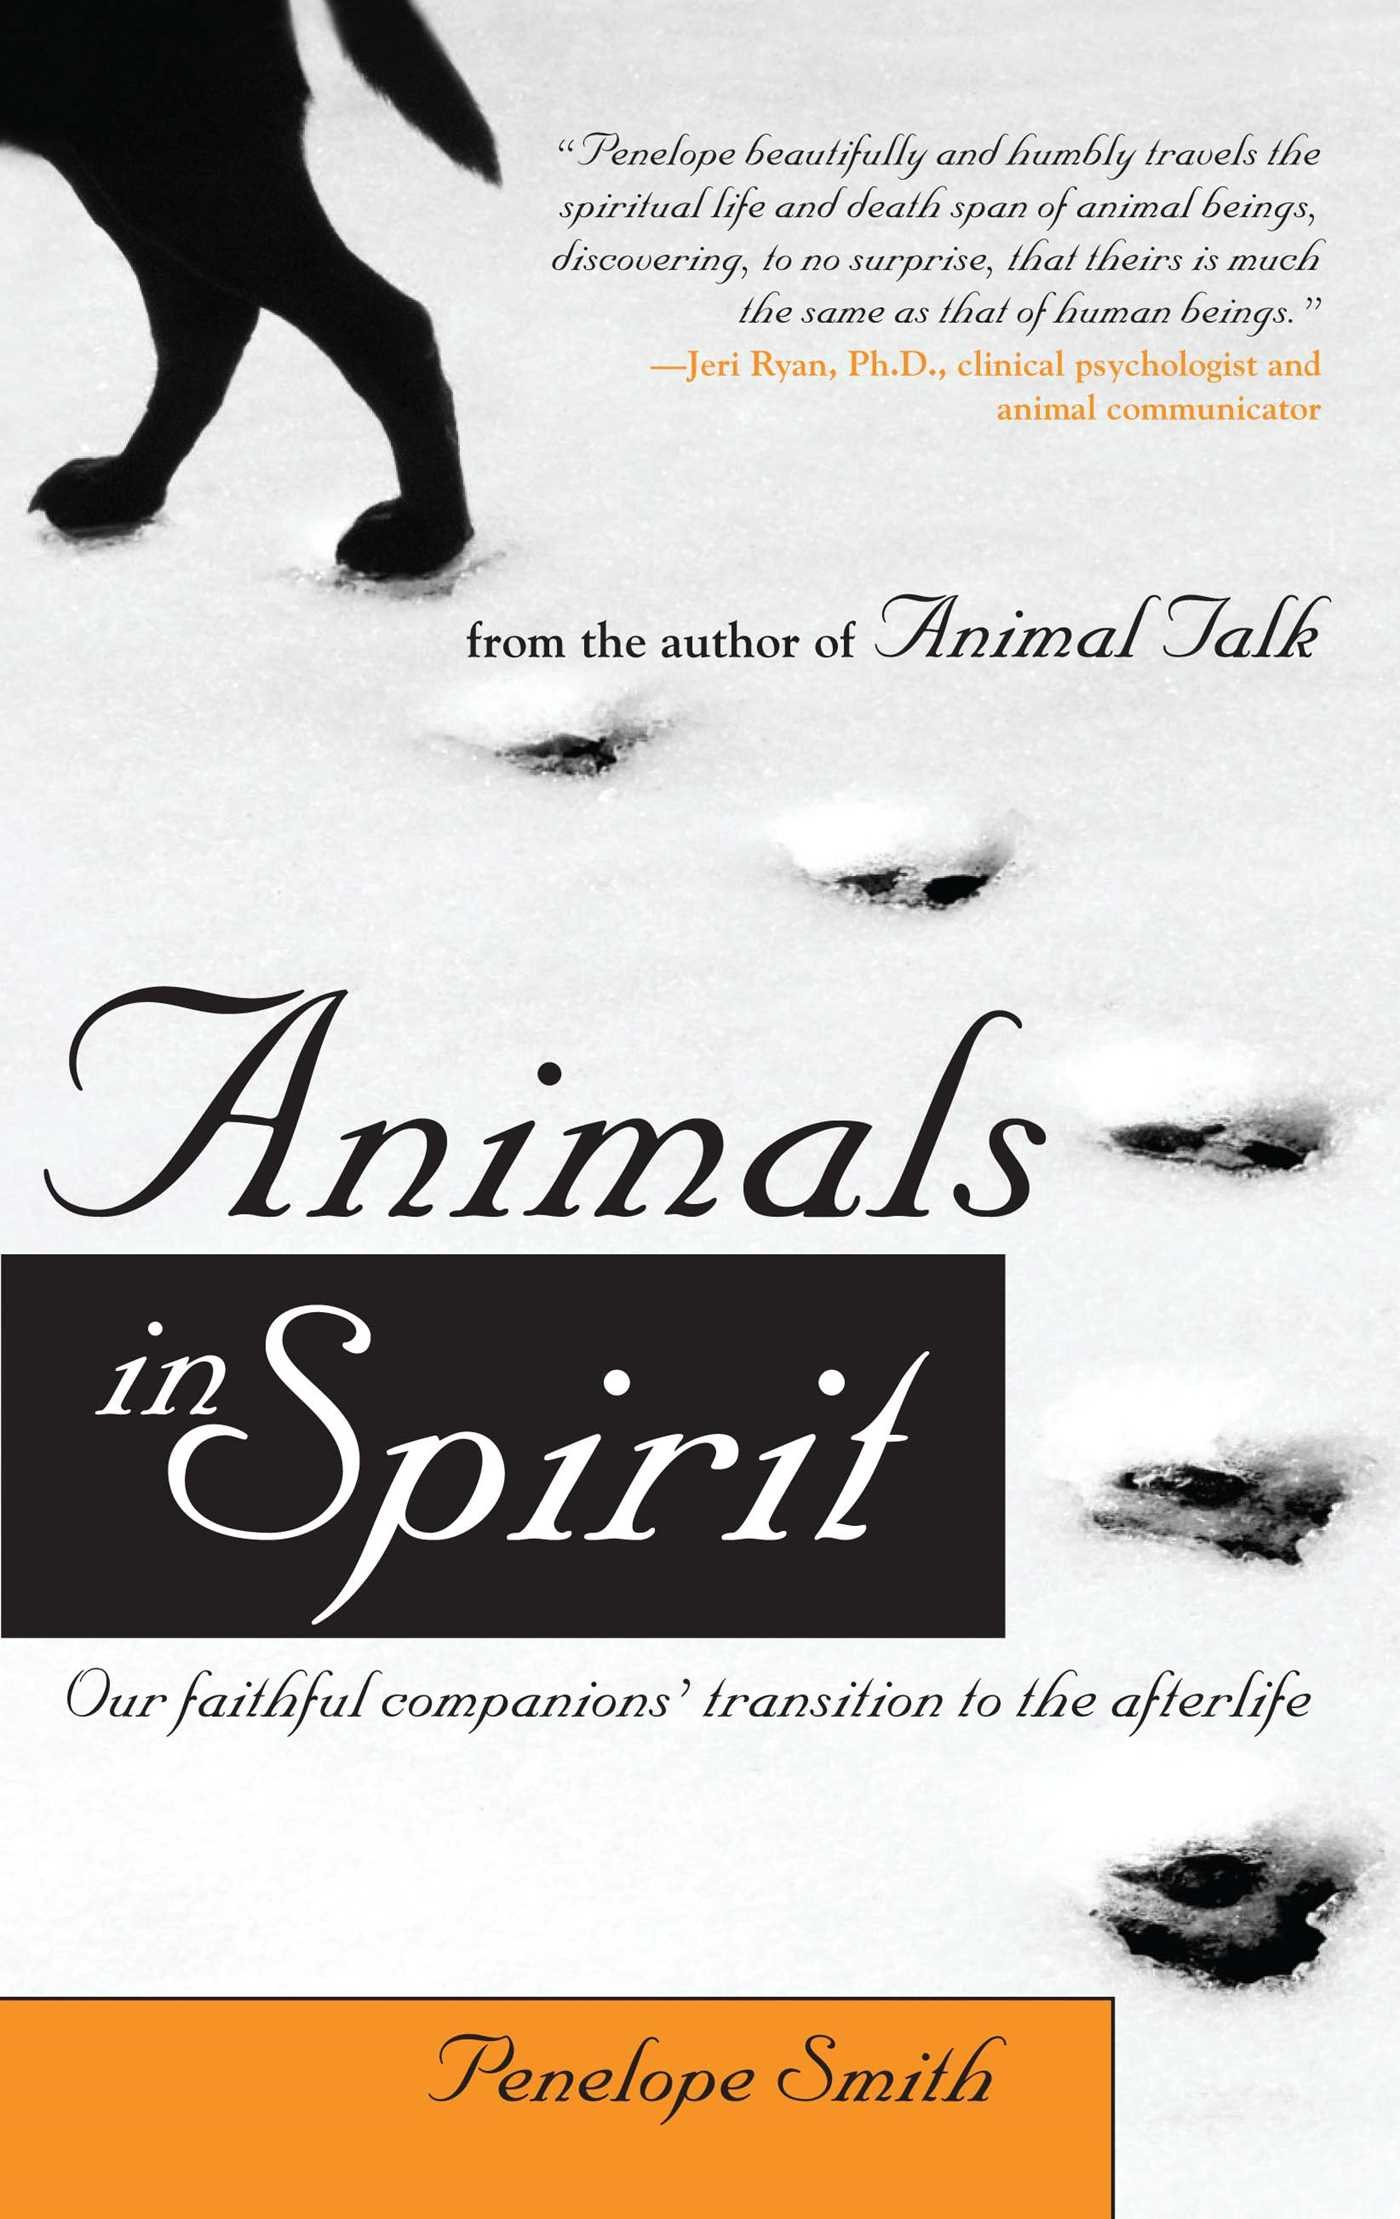 Image OfAnimals In Spirit: Our Faithful Companions' Transition To The Afterlife